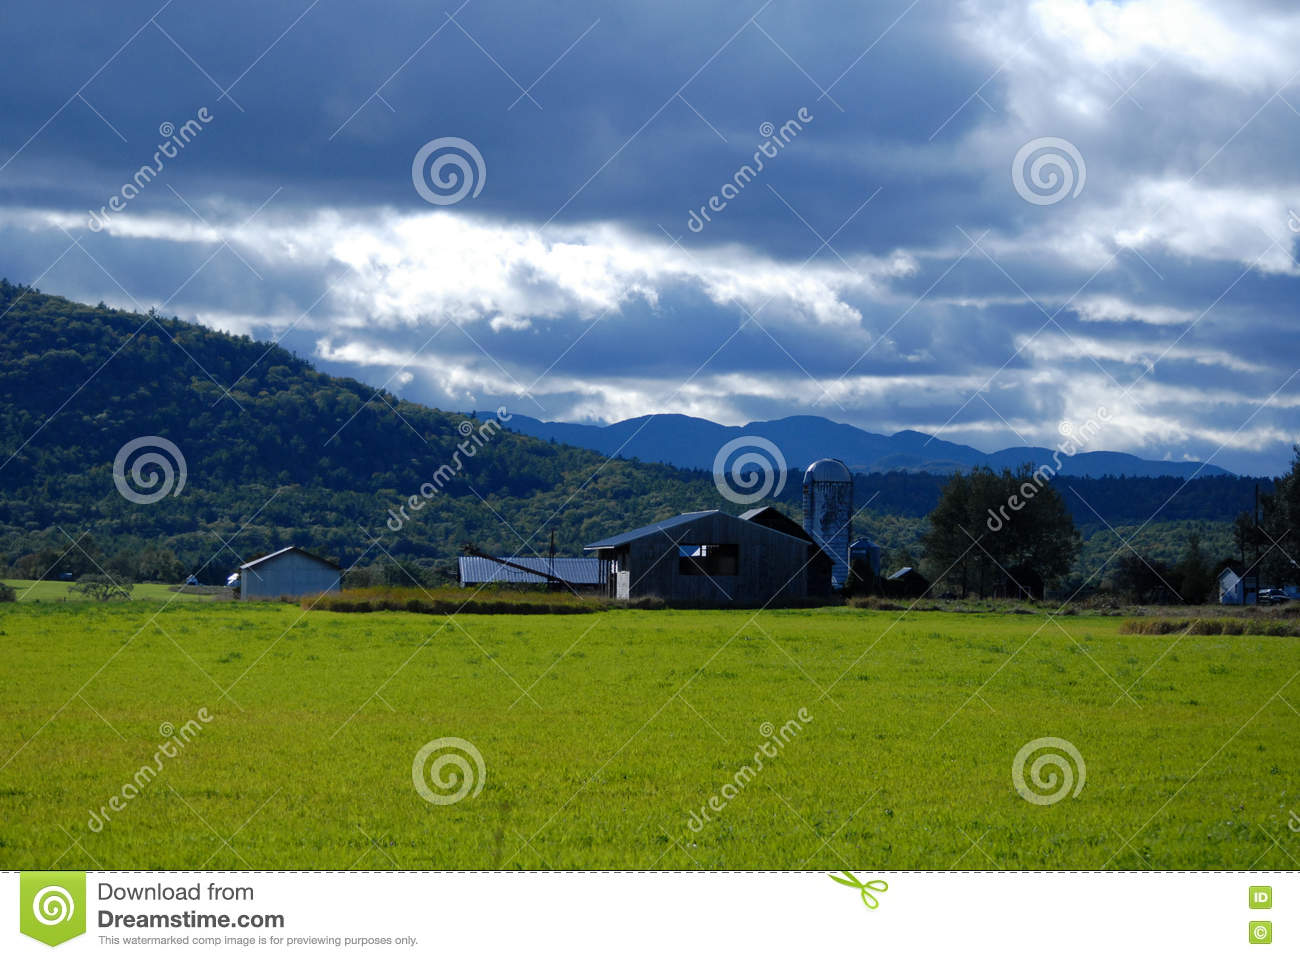 Upstate New York farm with tree covered Mountain with a blue clouded sky in autumn